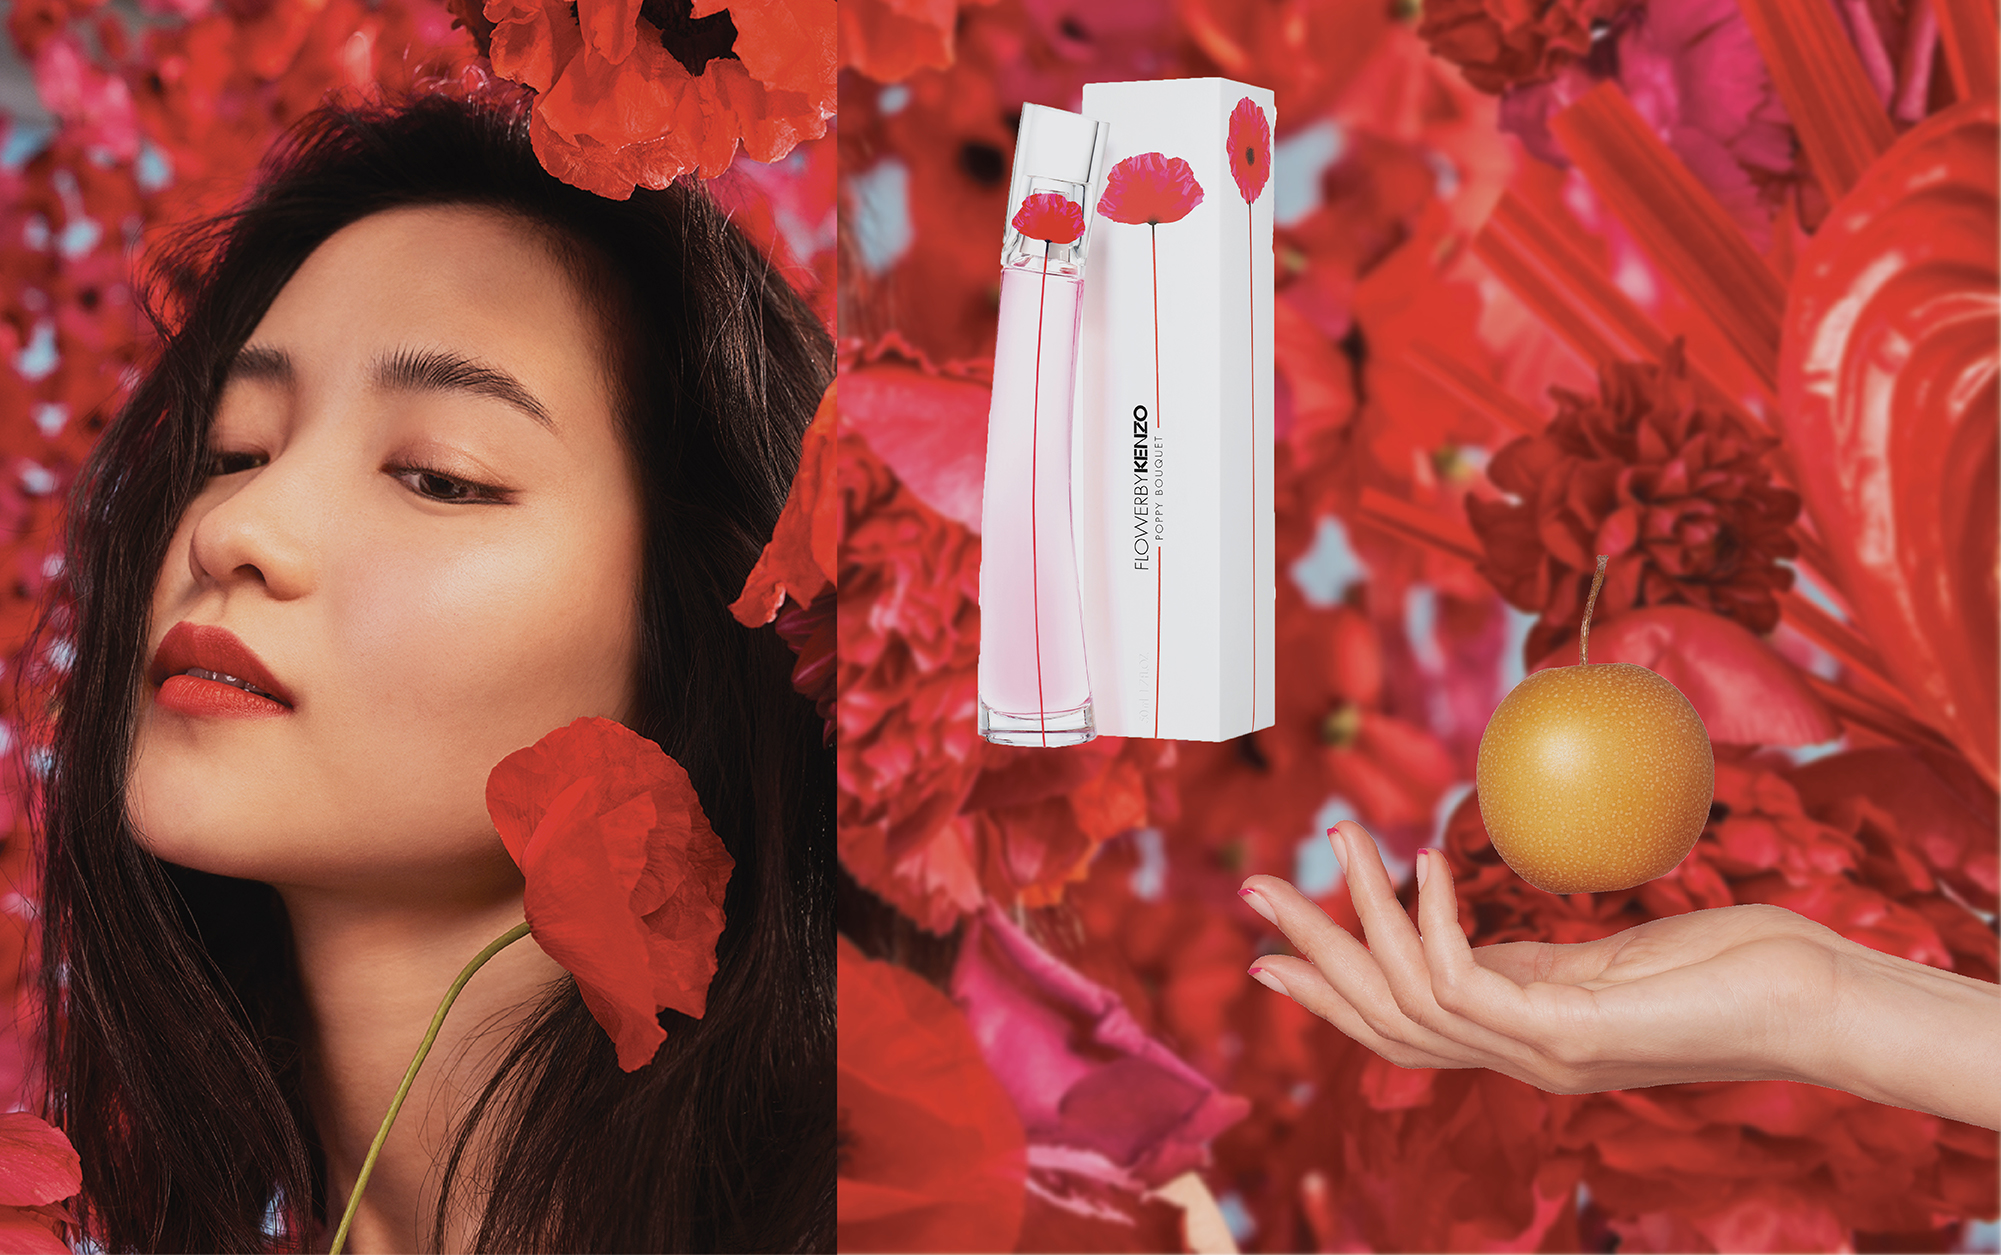 10 Questions With The Perfumers Behind Flower By Kenzo Poppy Bouquet